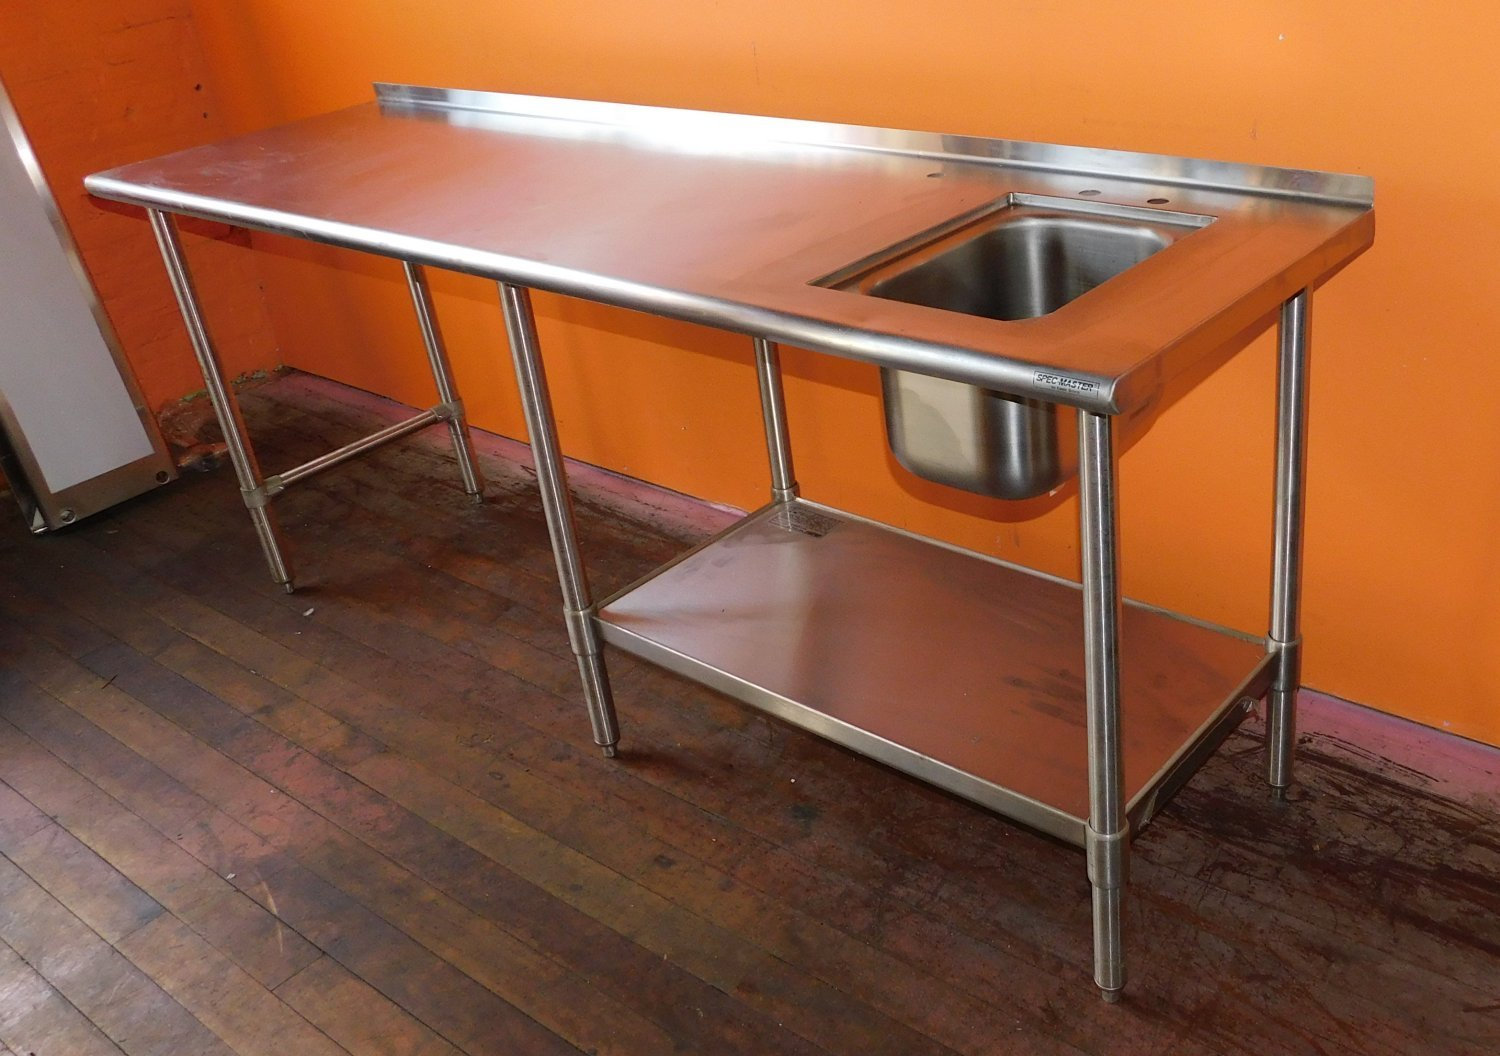 84 x 24 stainless steel prep work table with sink faucet trec